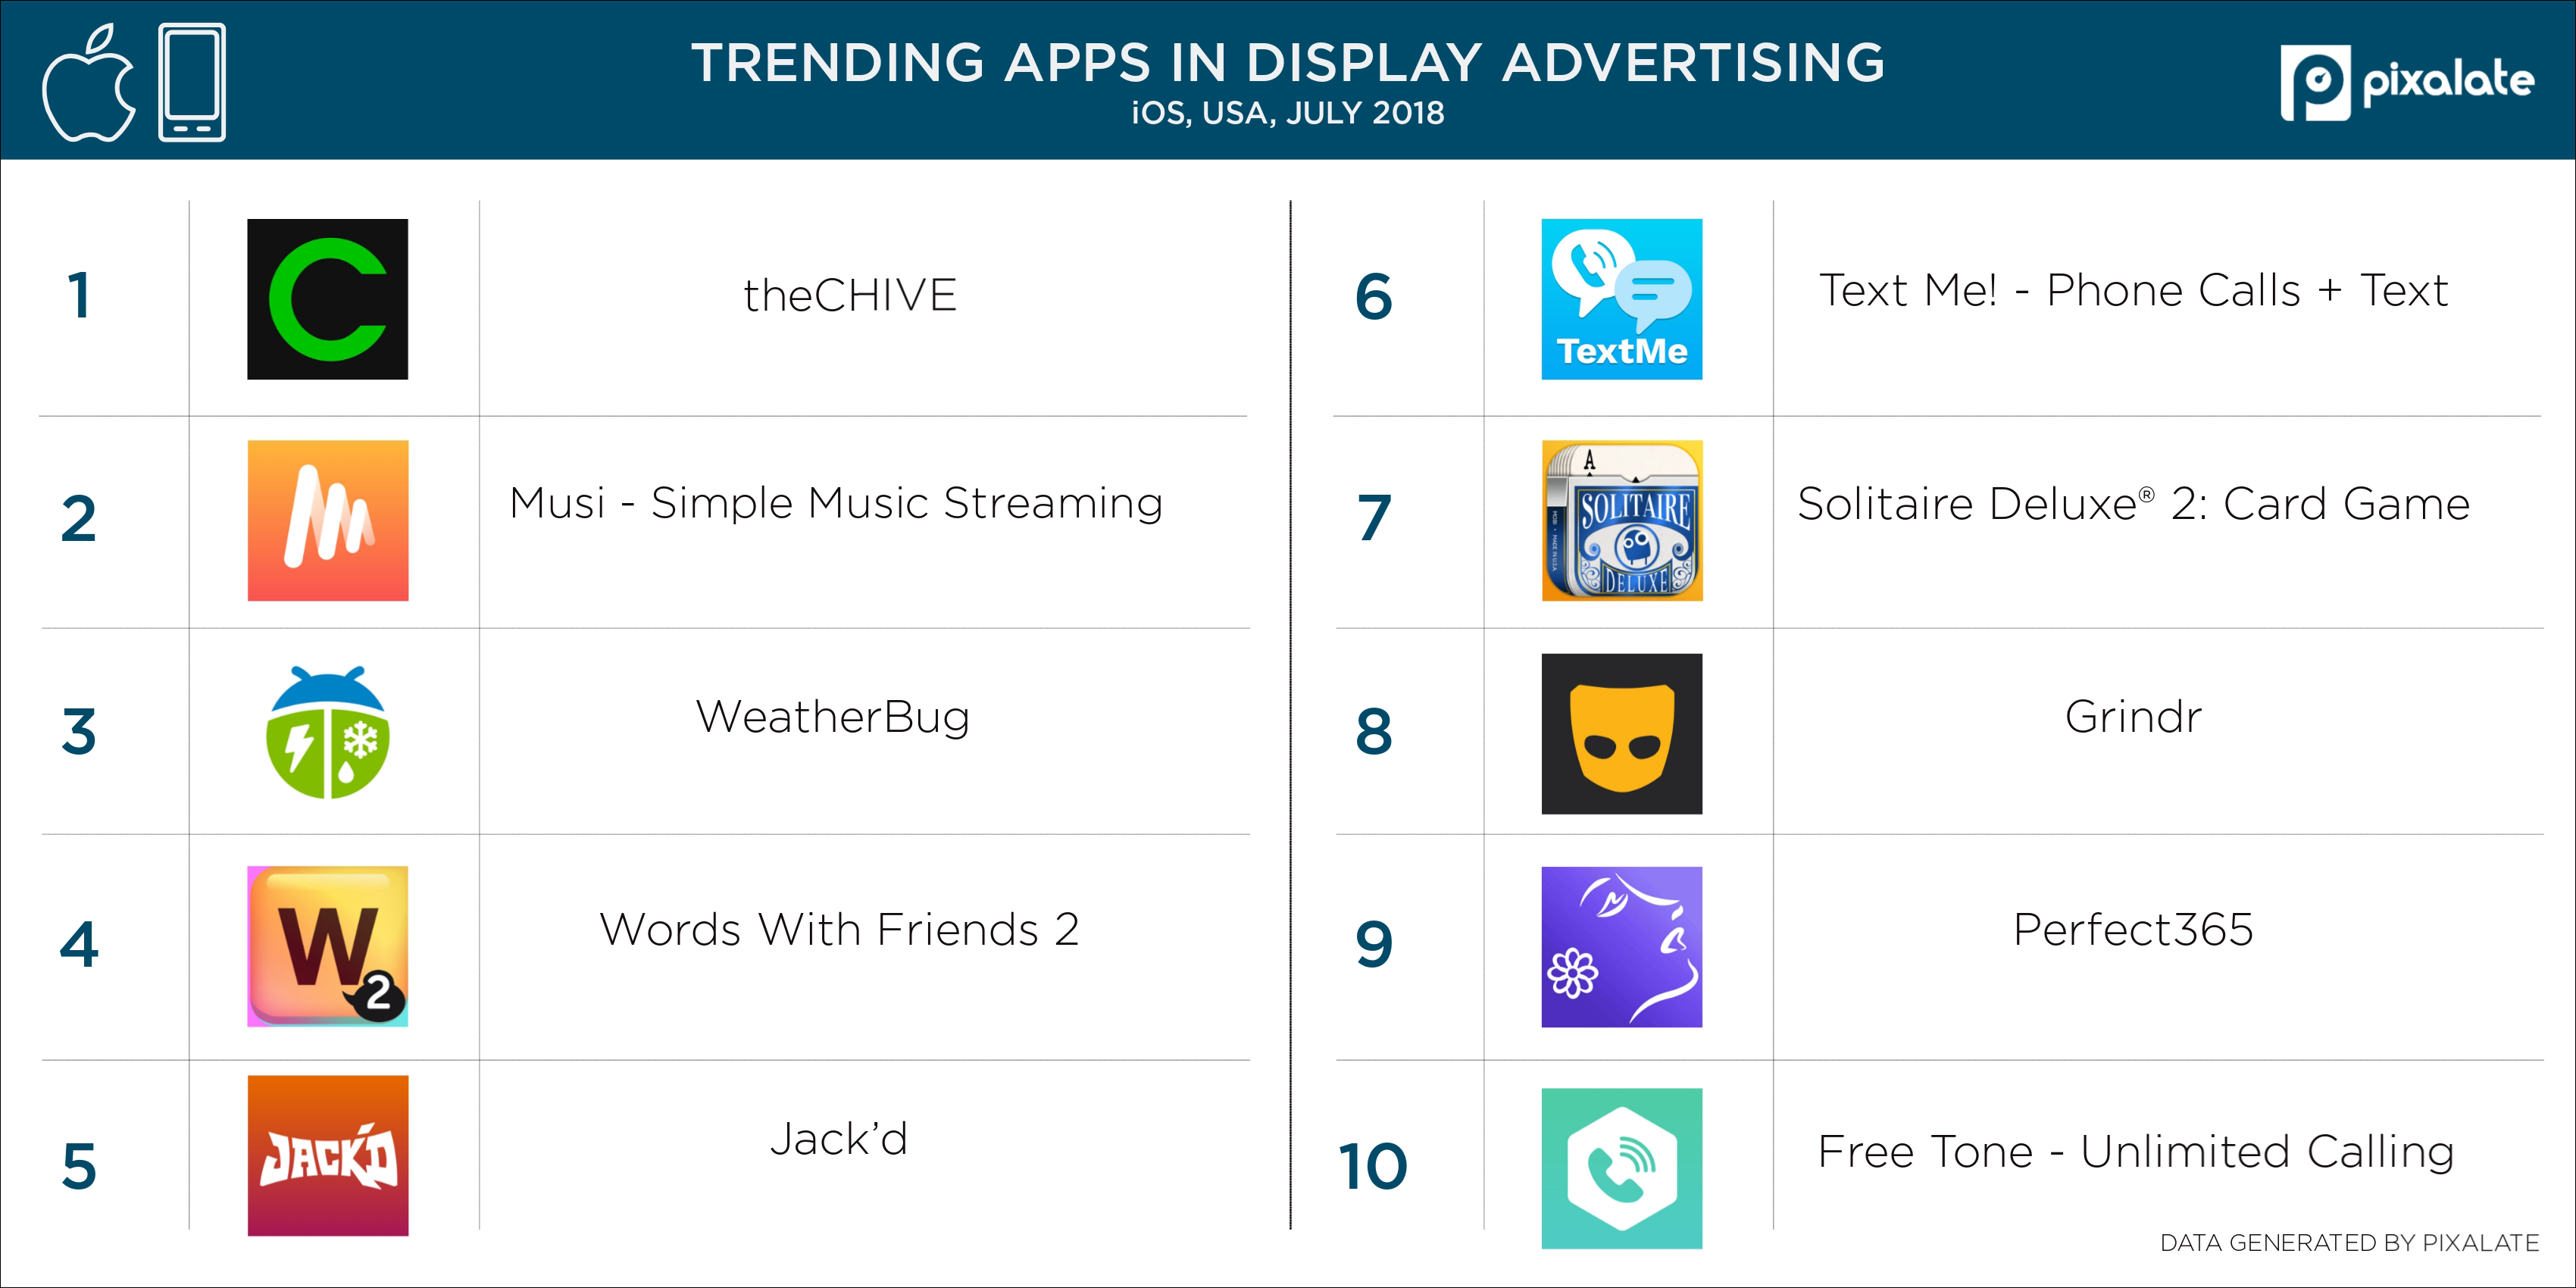 mobile-advertising-trends-top-iphone-apps-july-2018